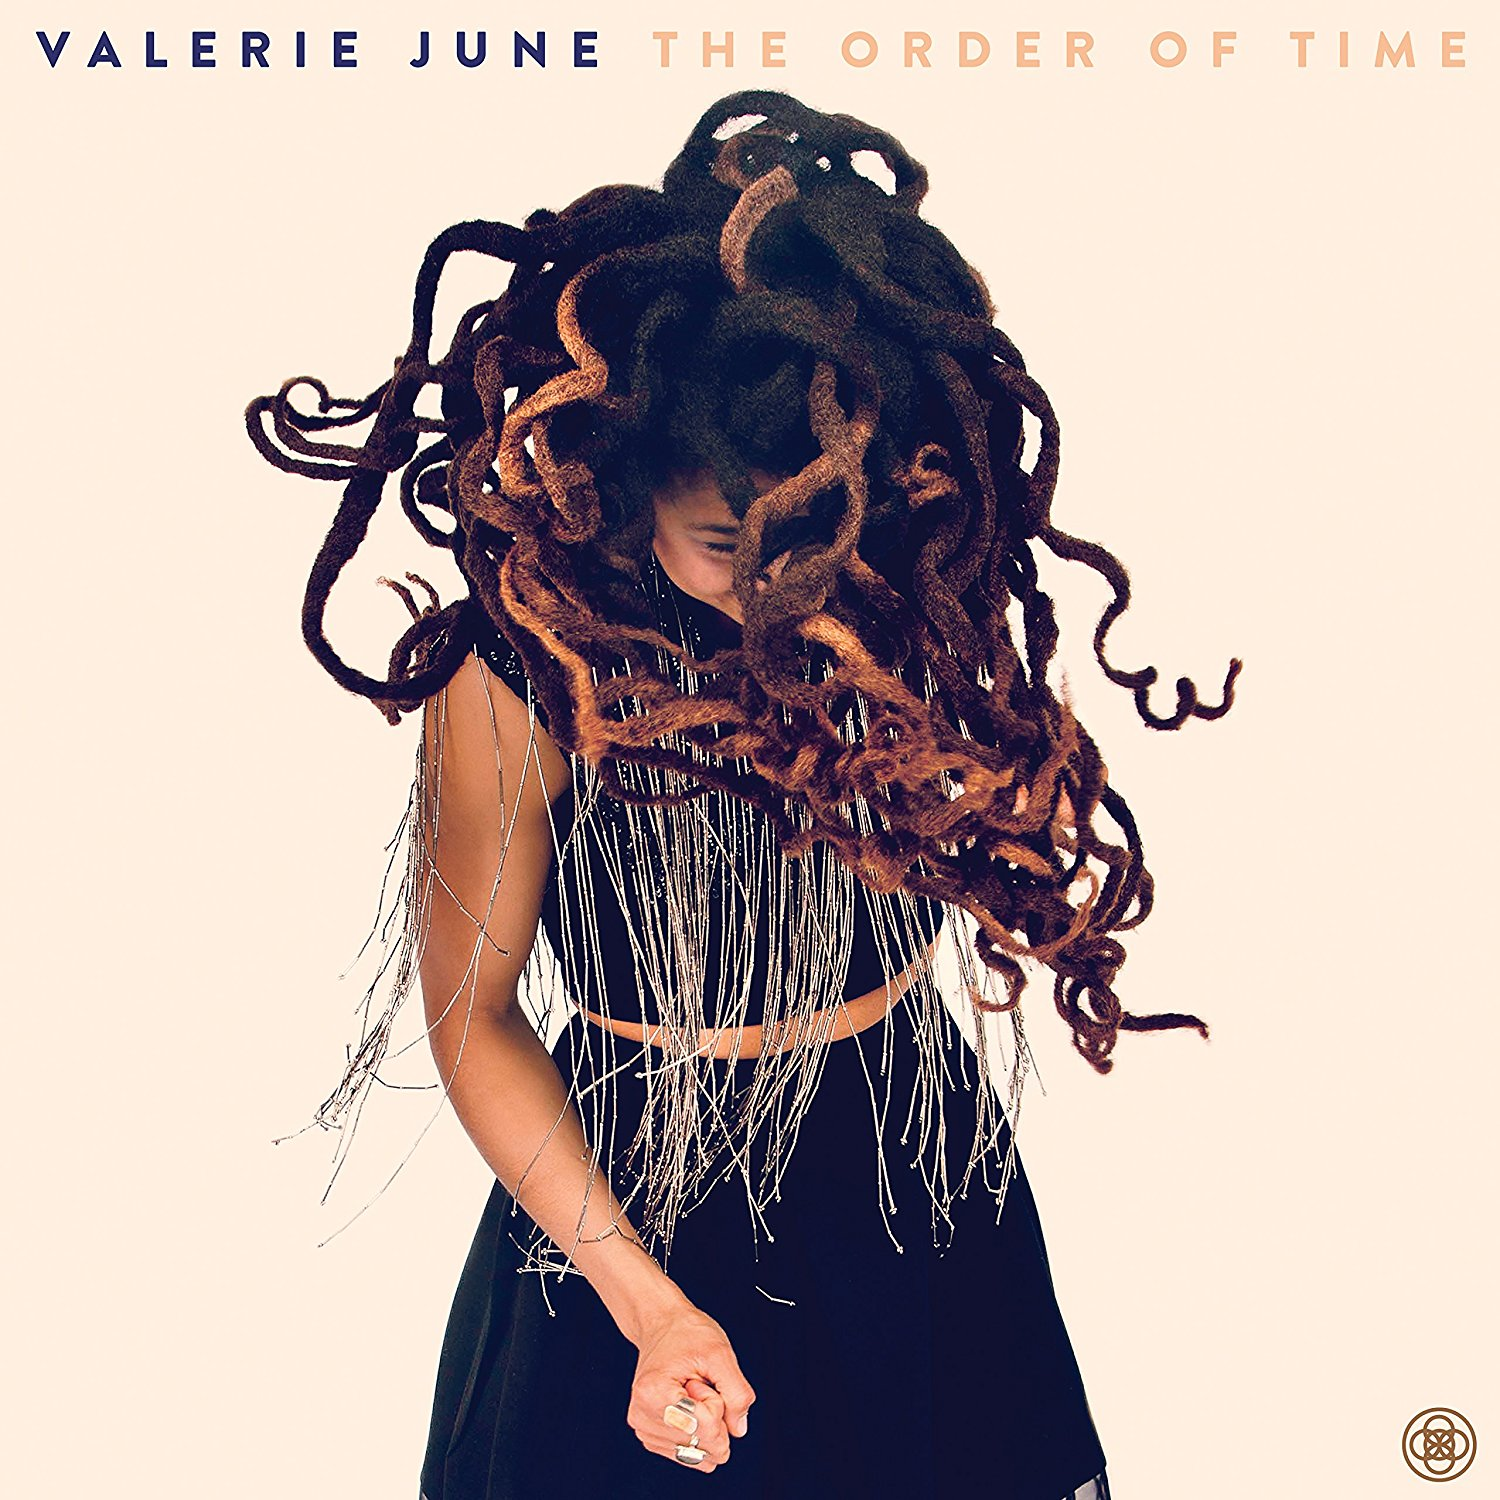 Valerie June The Order of Time